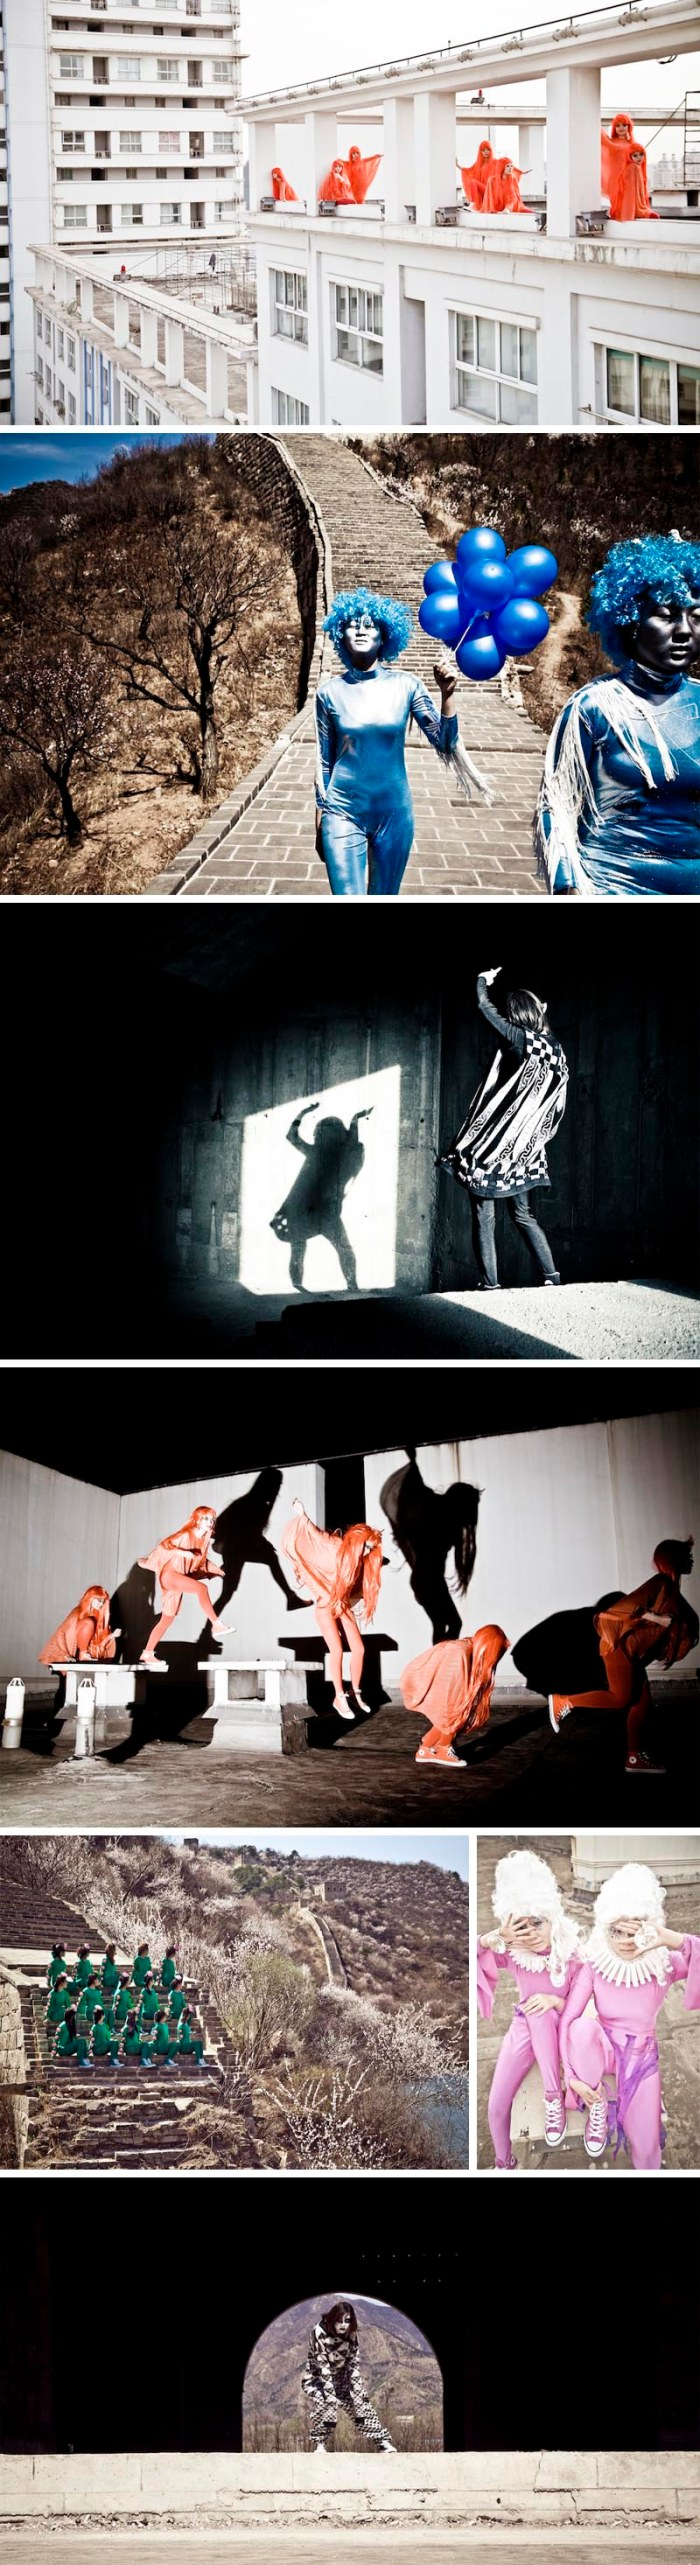 Performance art, Kitty Von-Sometime, The Weird Girls Project, Icelandic contemporary art, Converse collaboration in China